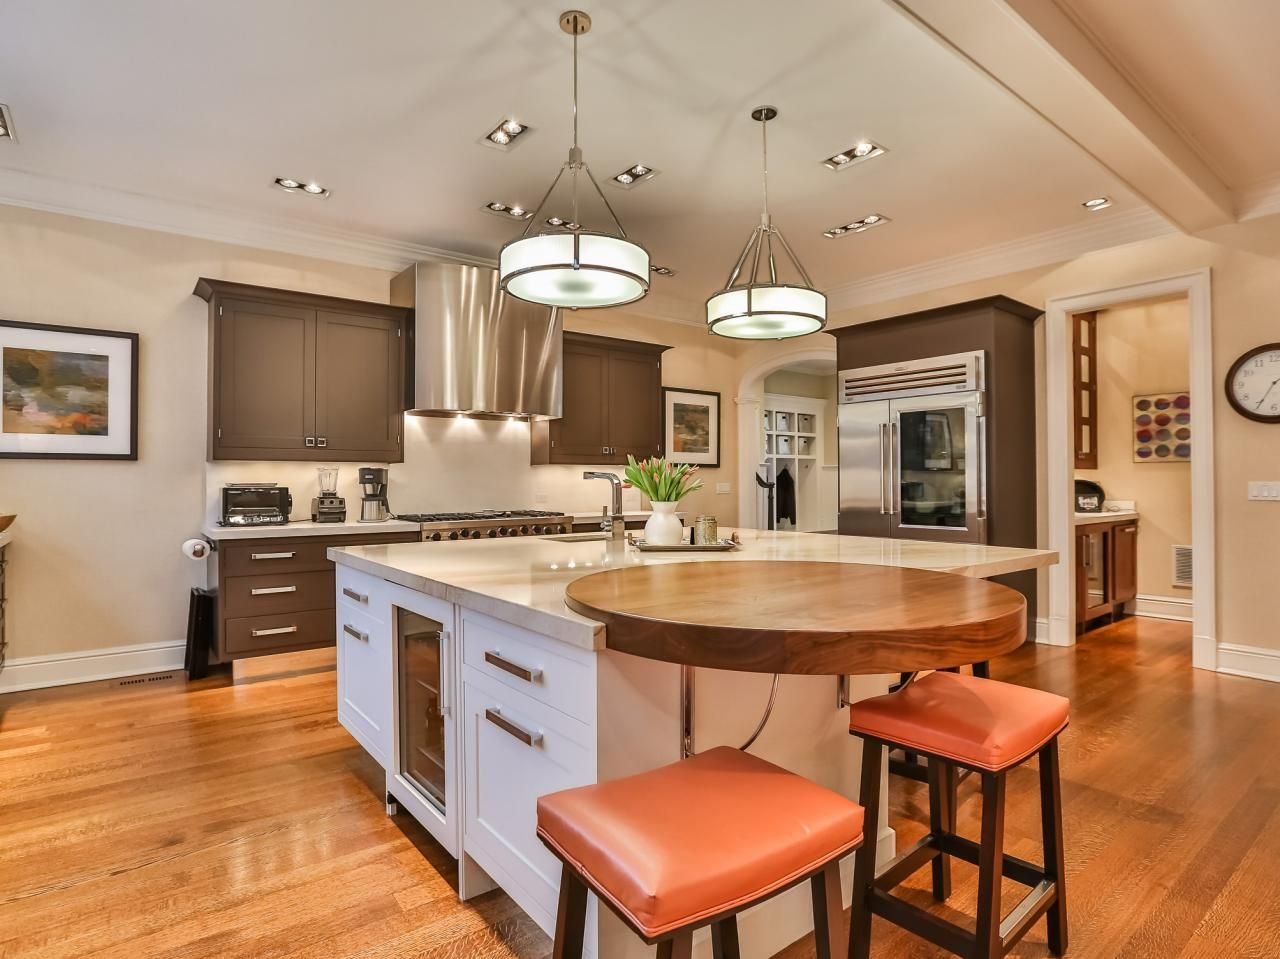 Amazing kitchens hgtv - Amazing Kitchens Hgtv Com S Ultimate House Hunt Hgtv Two Surfaces Not